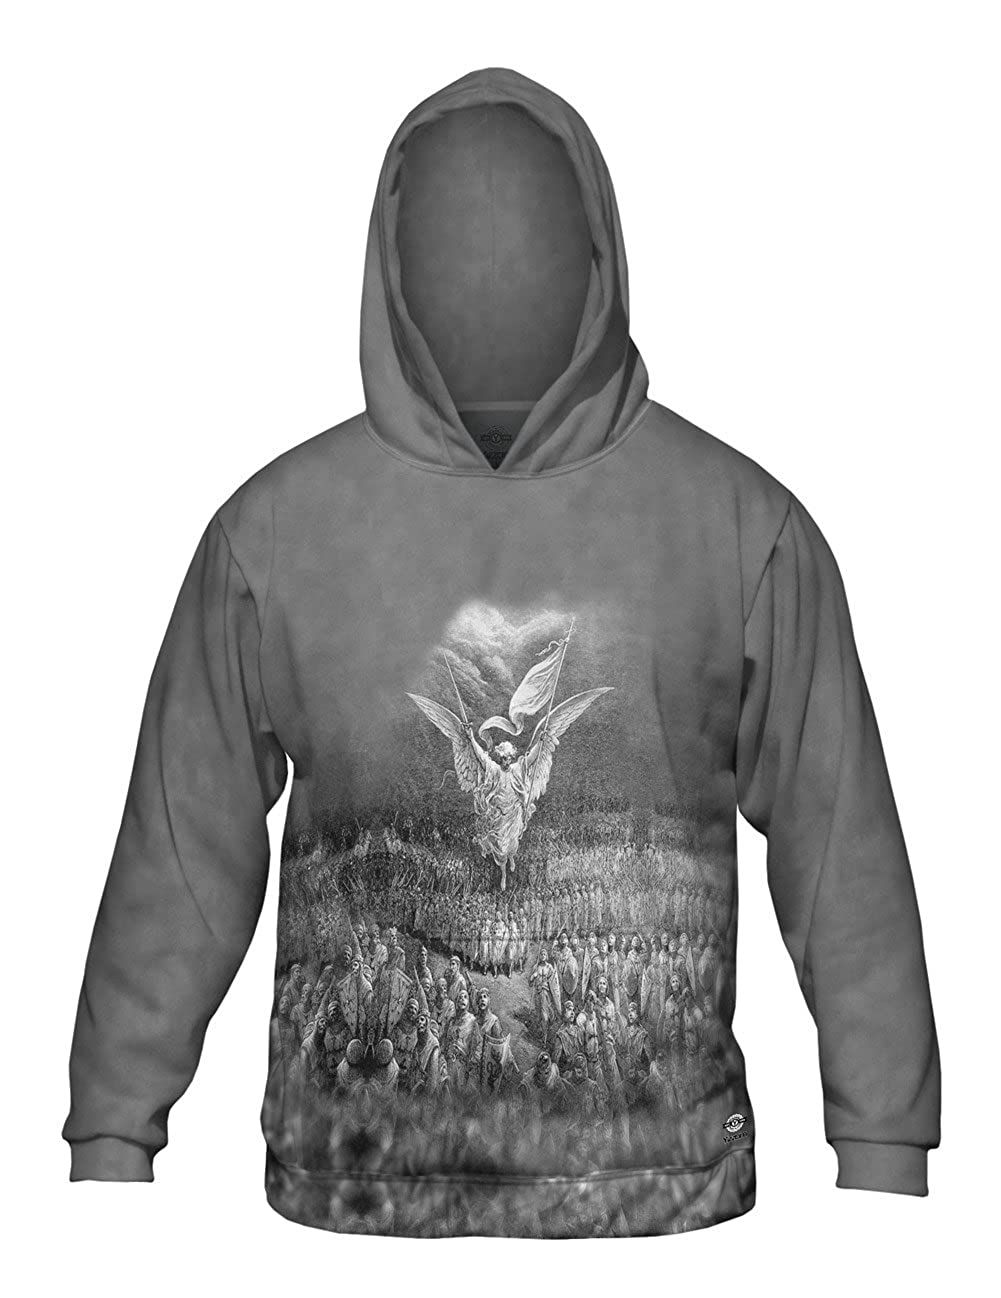 Yizzam- Gustave Dore Mens Hoodie 2786 Allover Print The Road to Jerusa